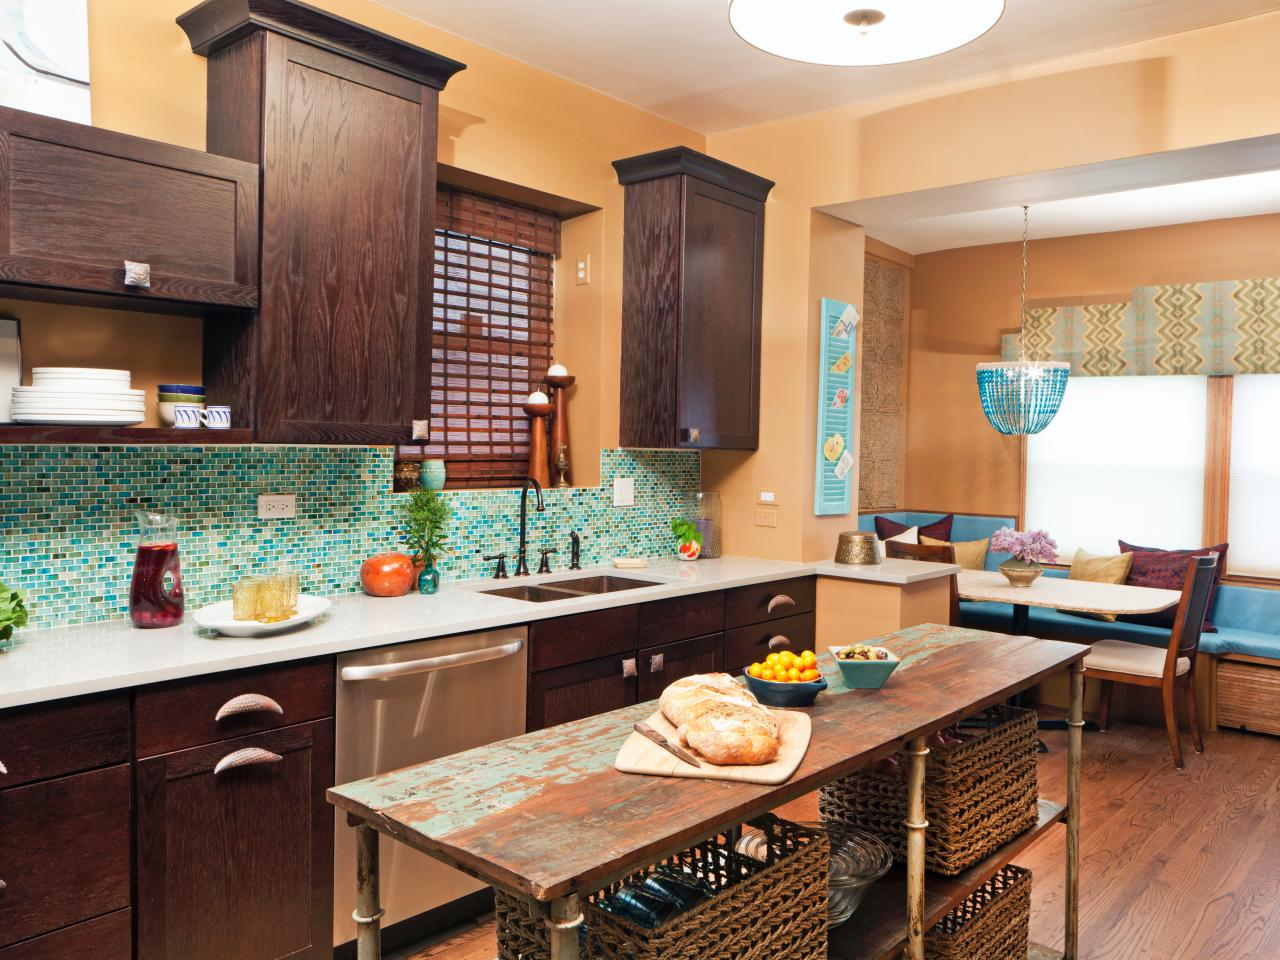 Top 15 Stunning Kitchen Design Ideas, Plus their Costs - DIY Home Improvement Ideas for Fall 2016